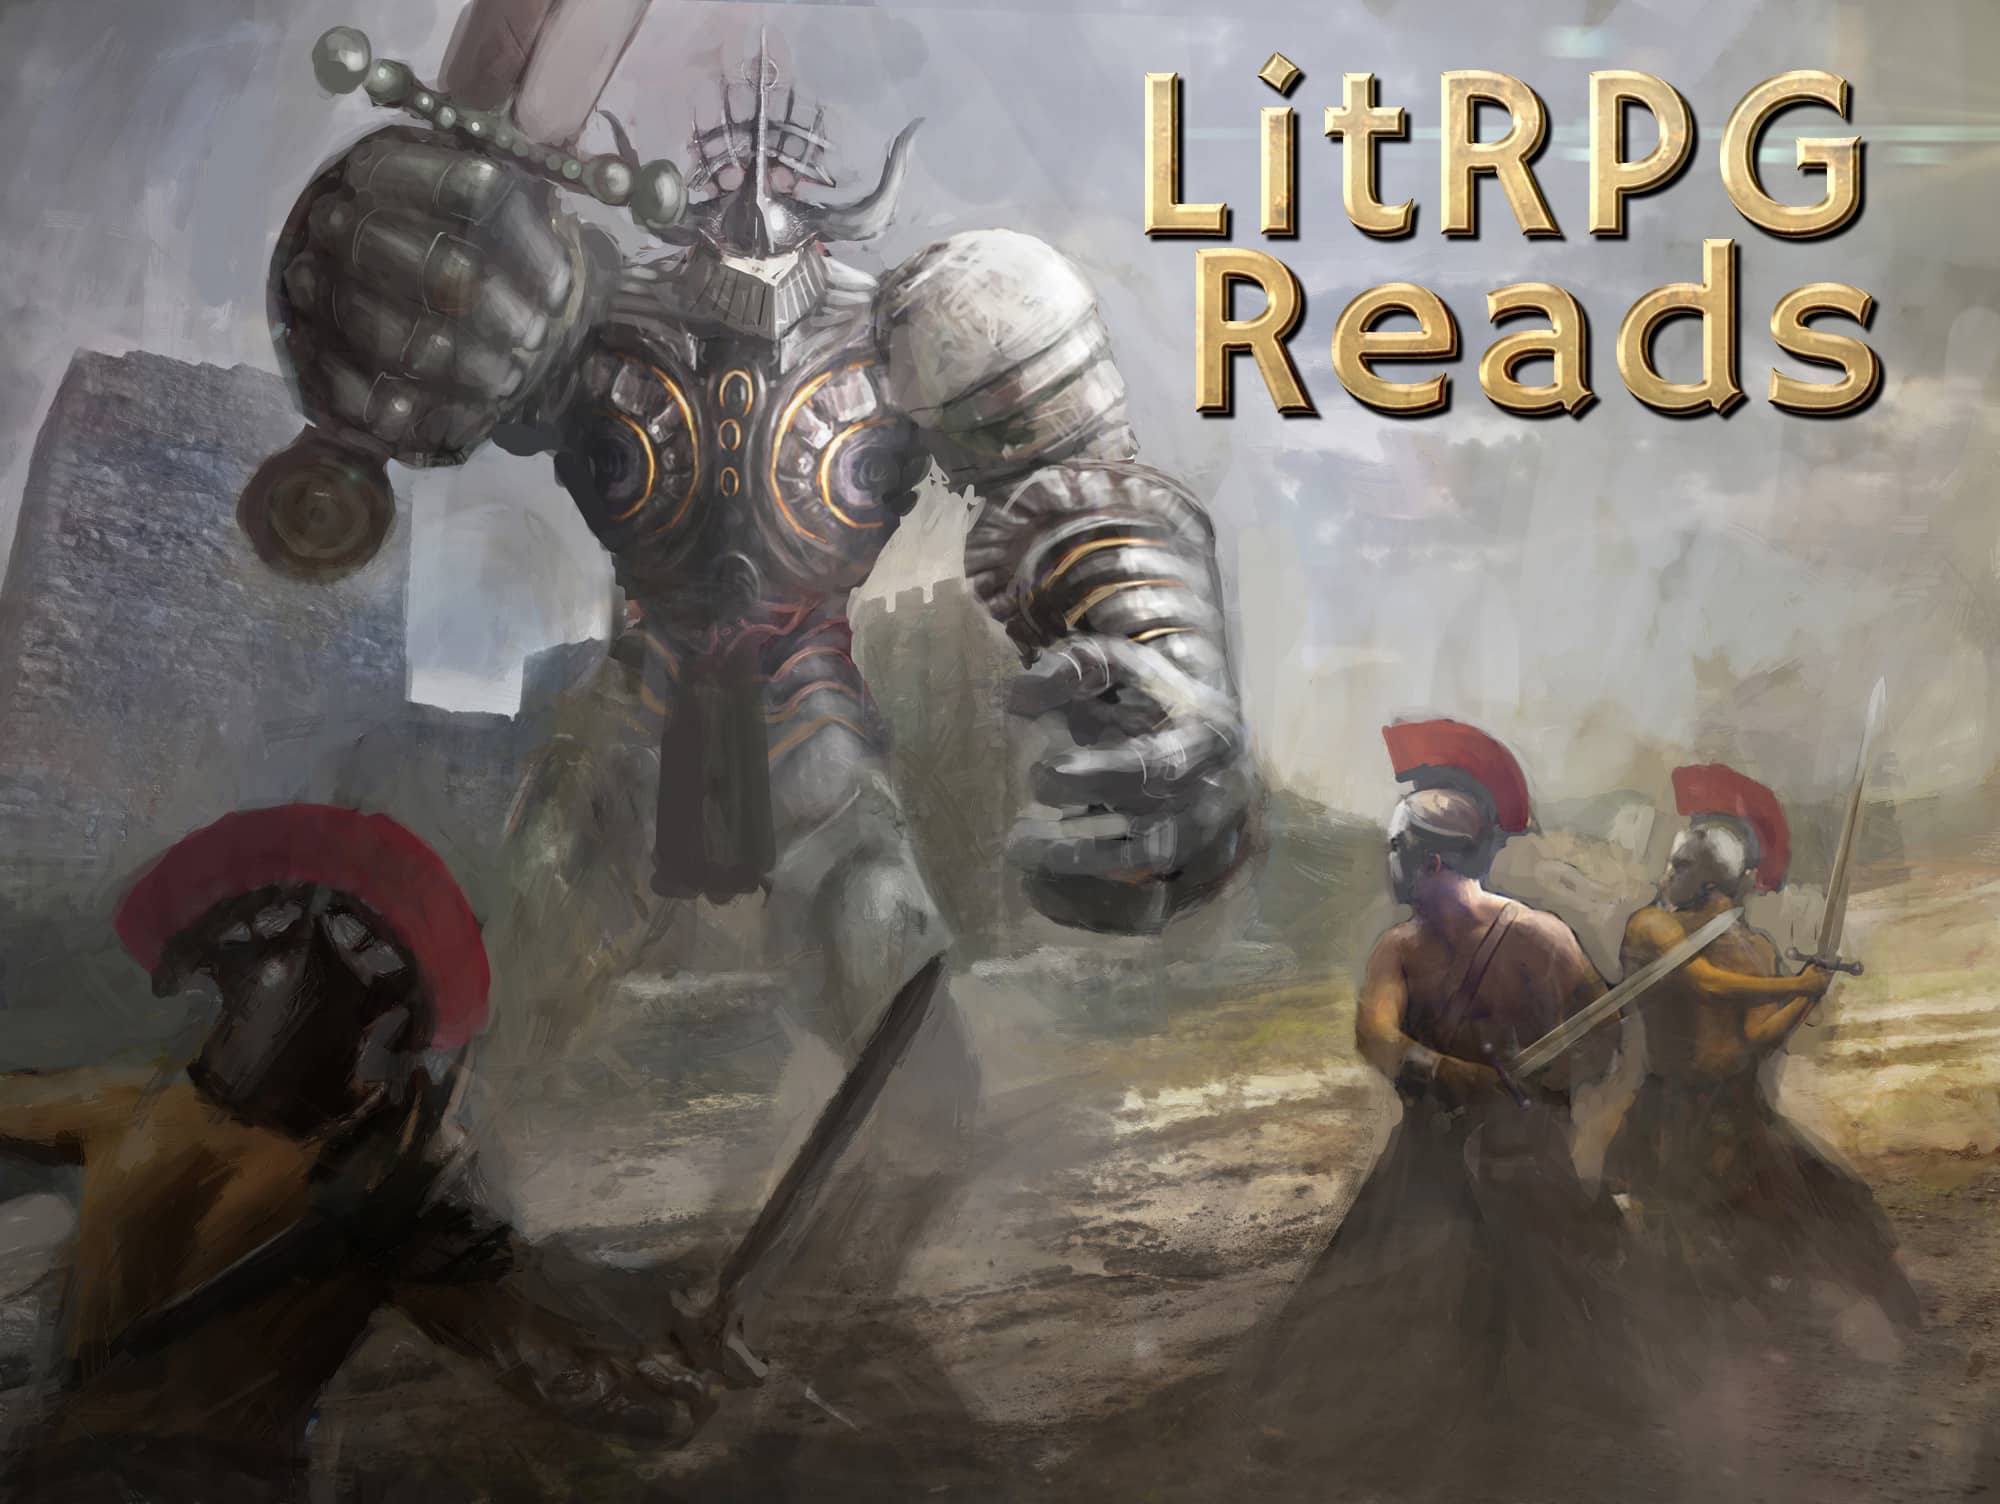 LitRPG – A New Genre of Reading